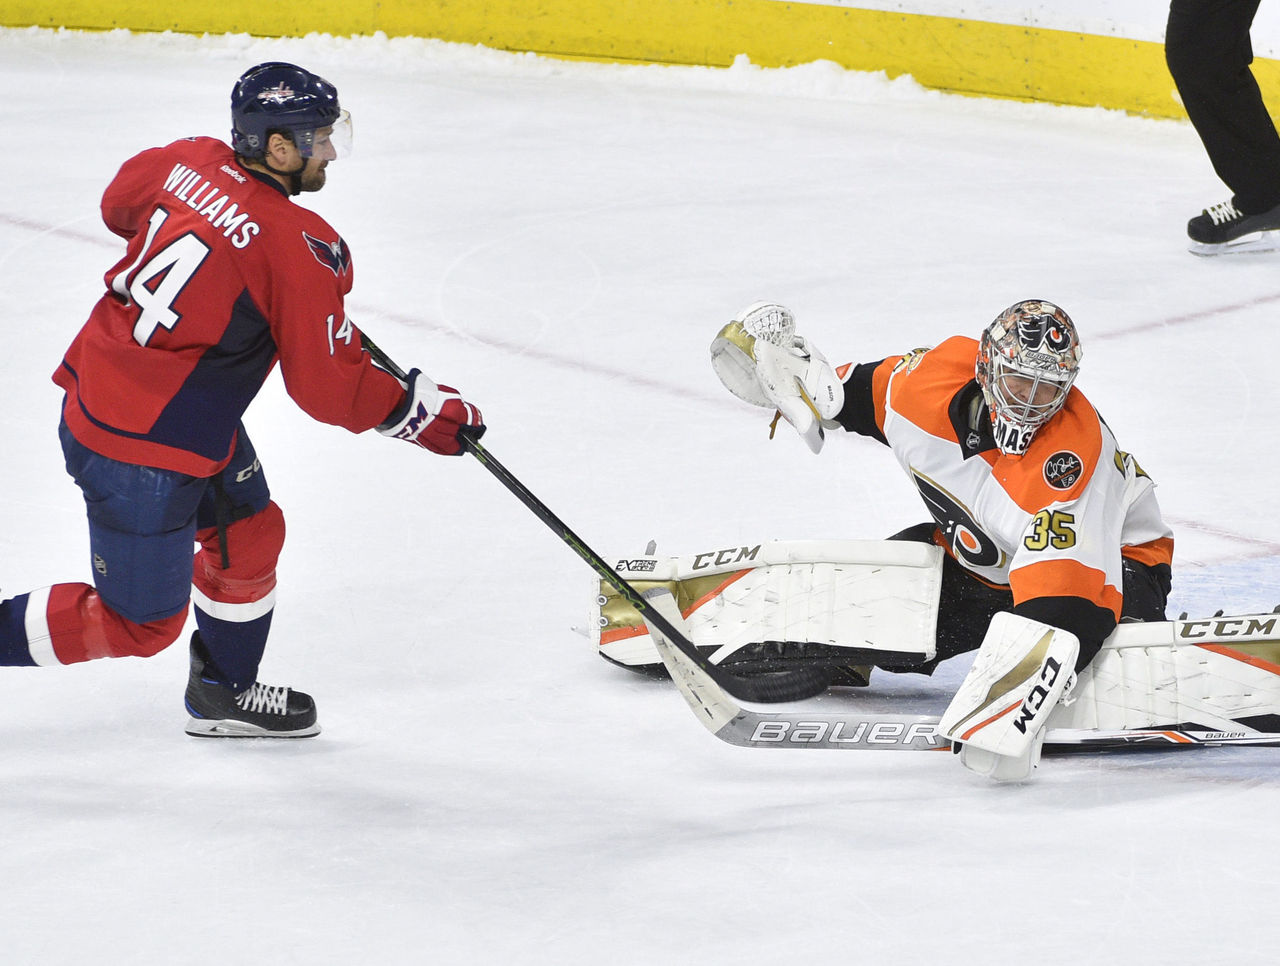 Cropped 2016 12 22t041503z 1989522549 nocid rtrmadp 3 nhl washington capitals at philadelphia flyers